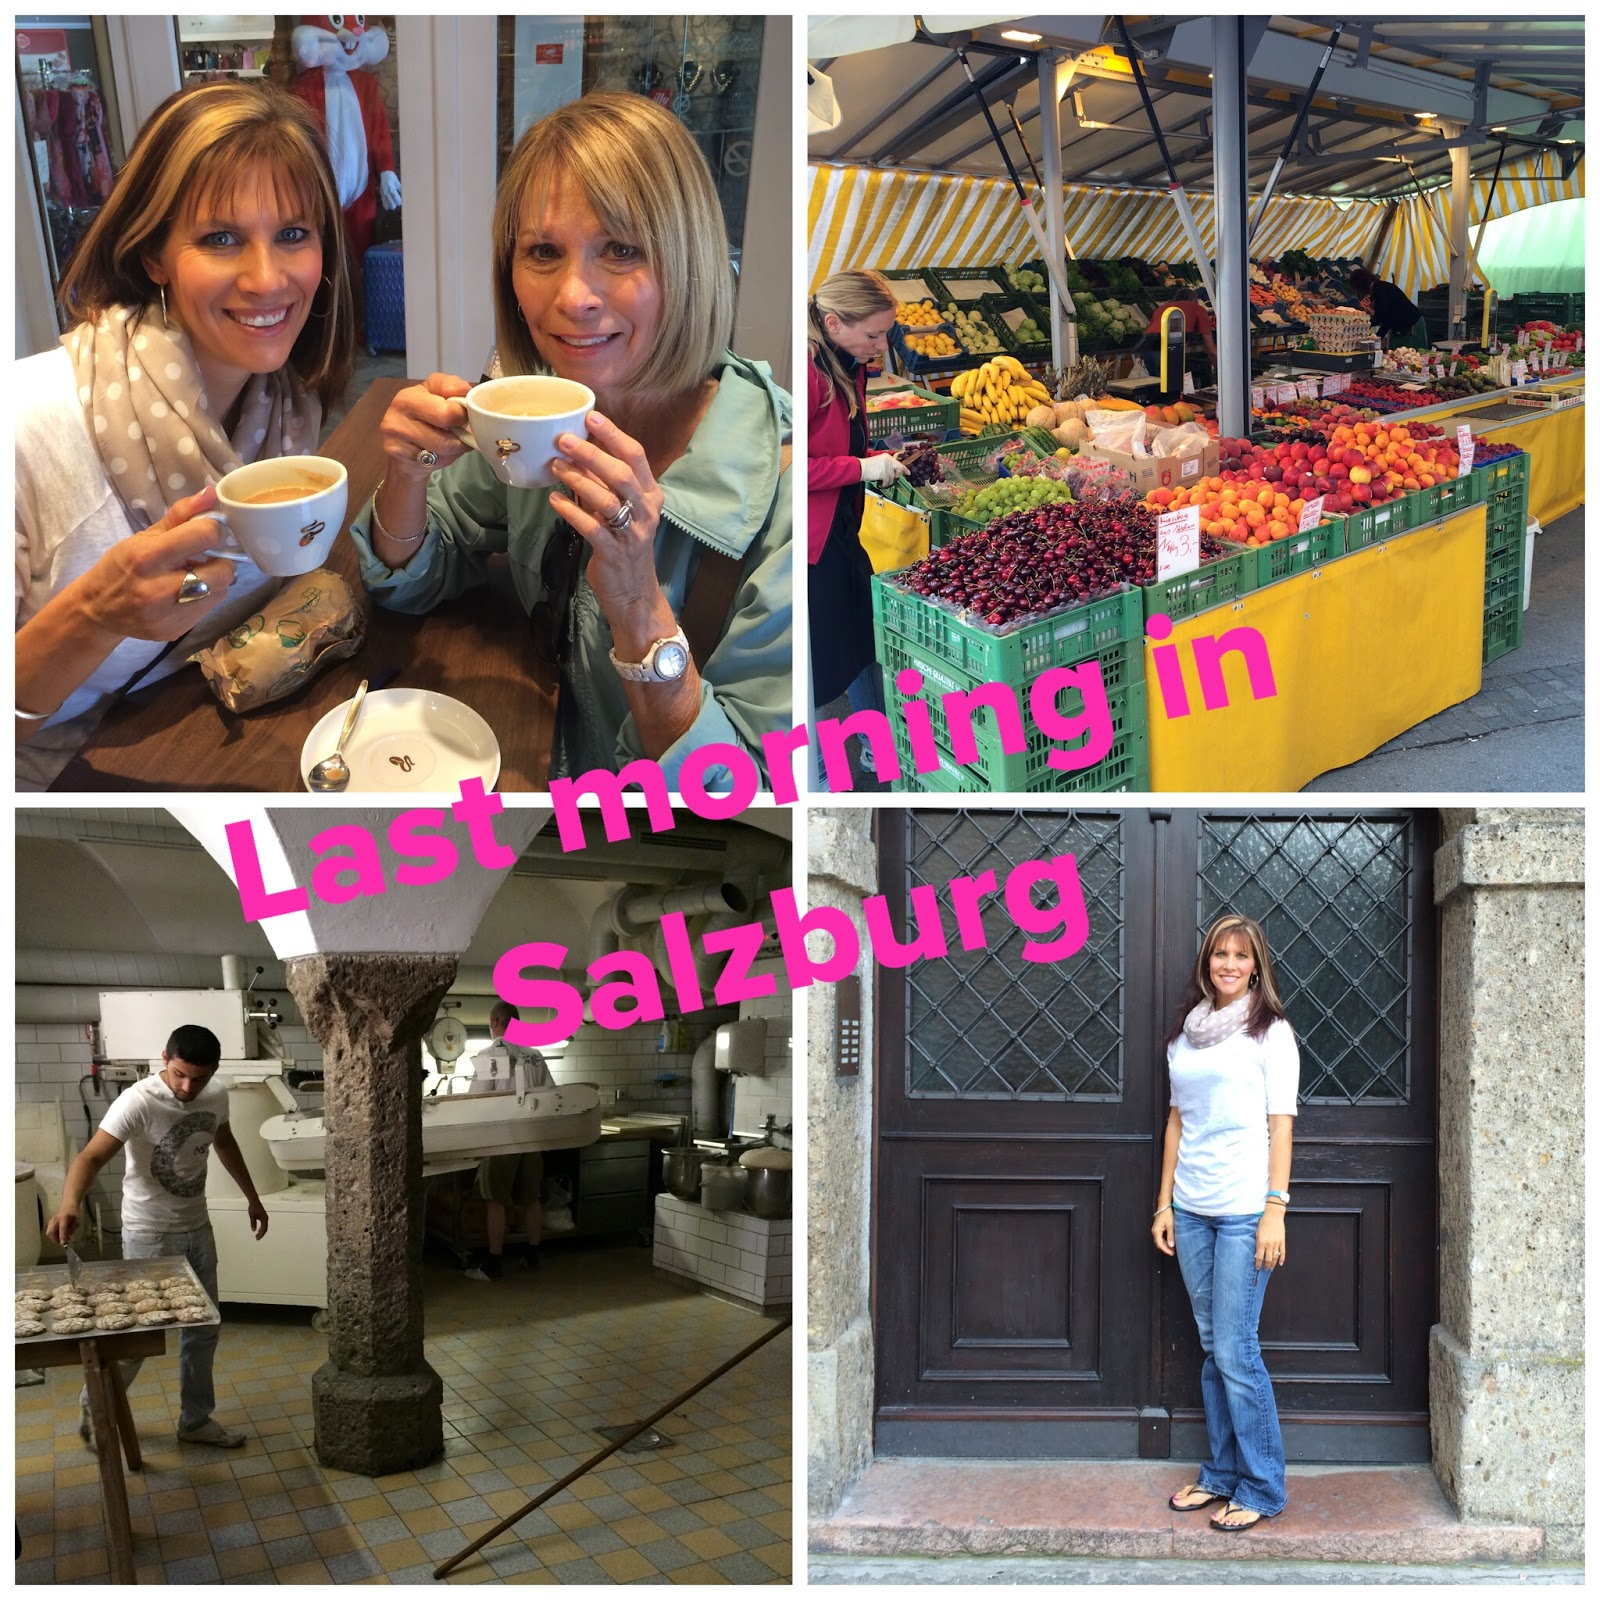 European Dream Vacation, Salzburg Austria